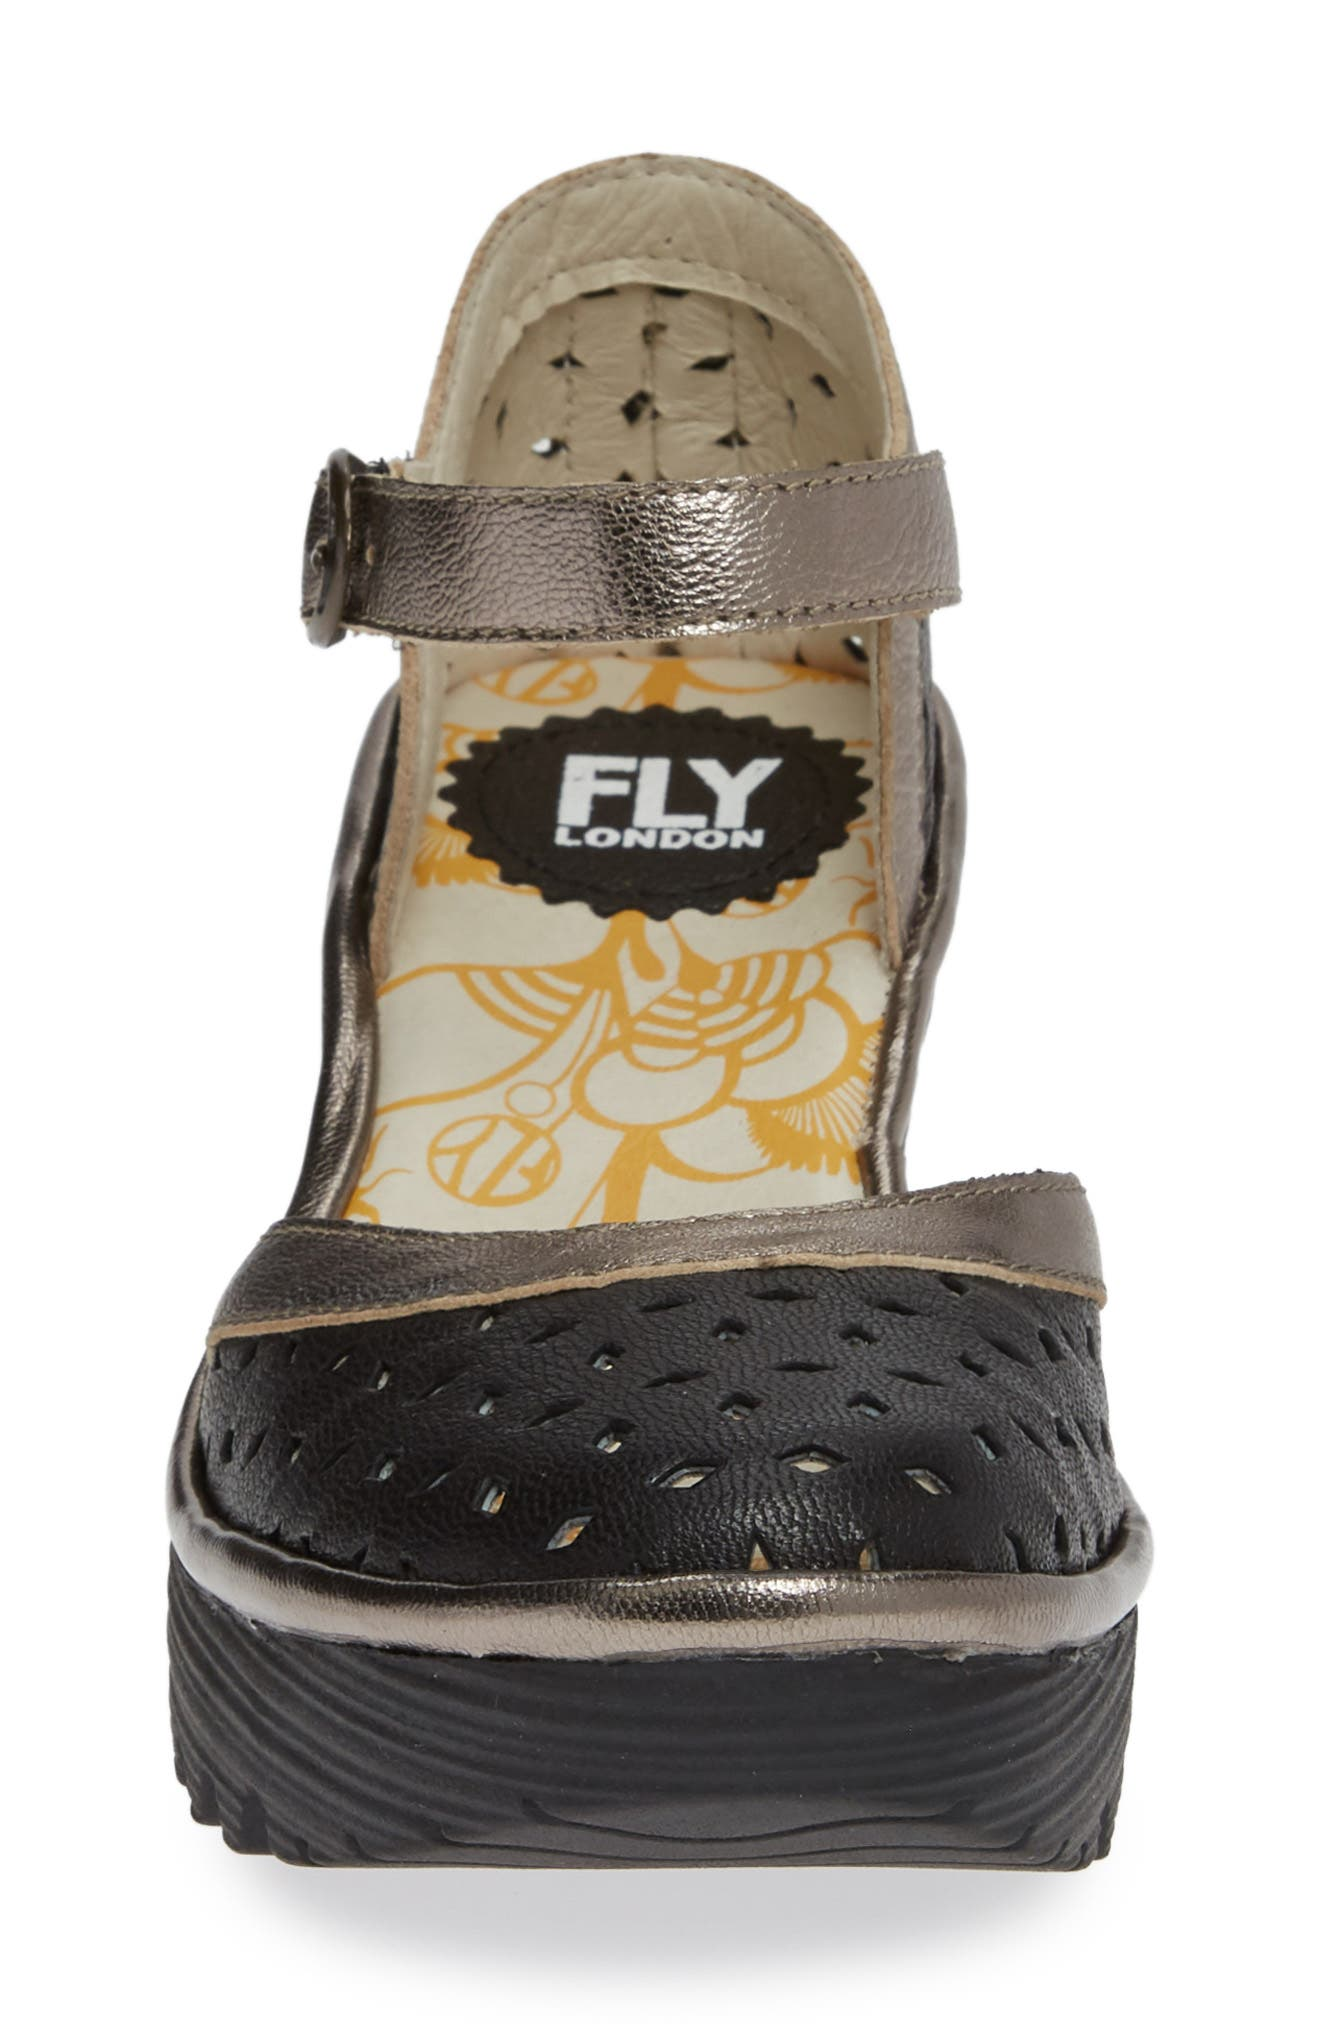 FLY LONDON,                             Yven Wedge,                             Alternate thumbnail 4, color,                             BLACK/ BRONZE LEATHER